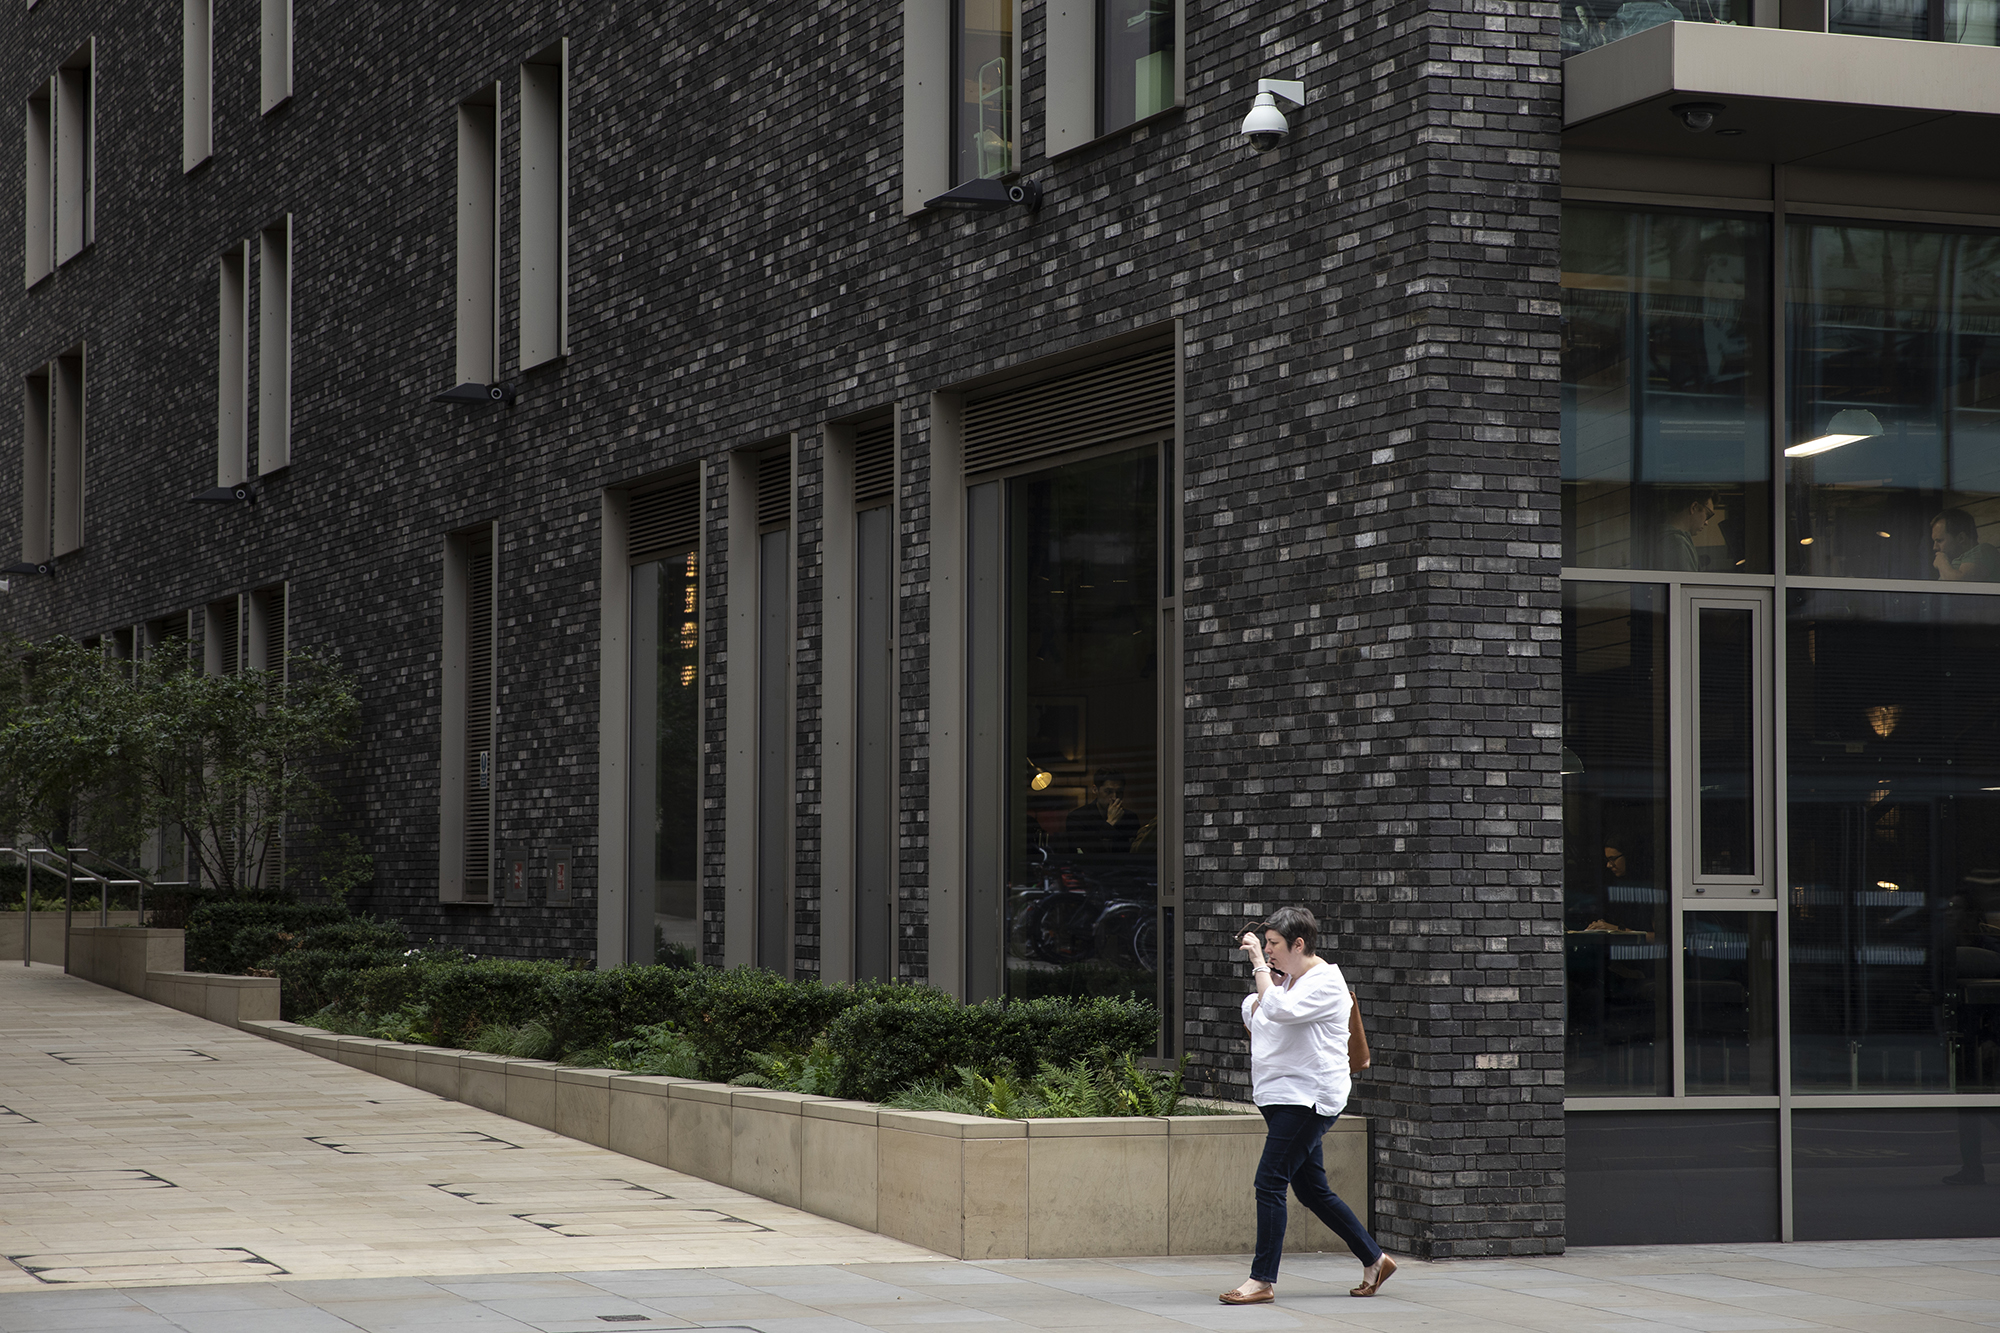 The King's Cross estate has CCTV cameras and deploys facial recognition technology. Getty